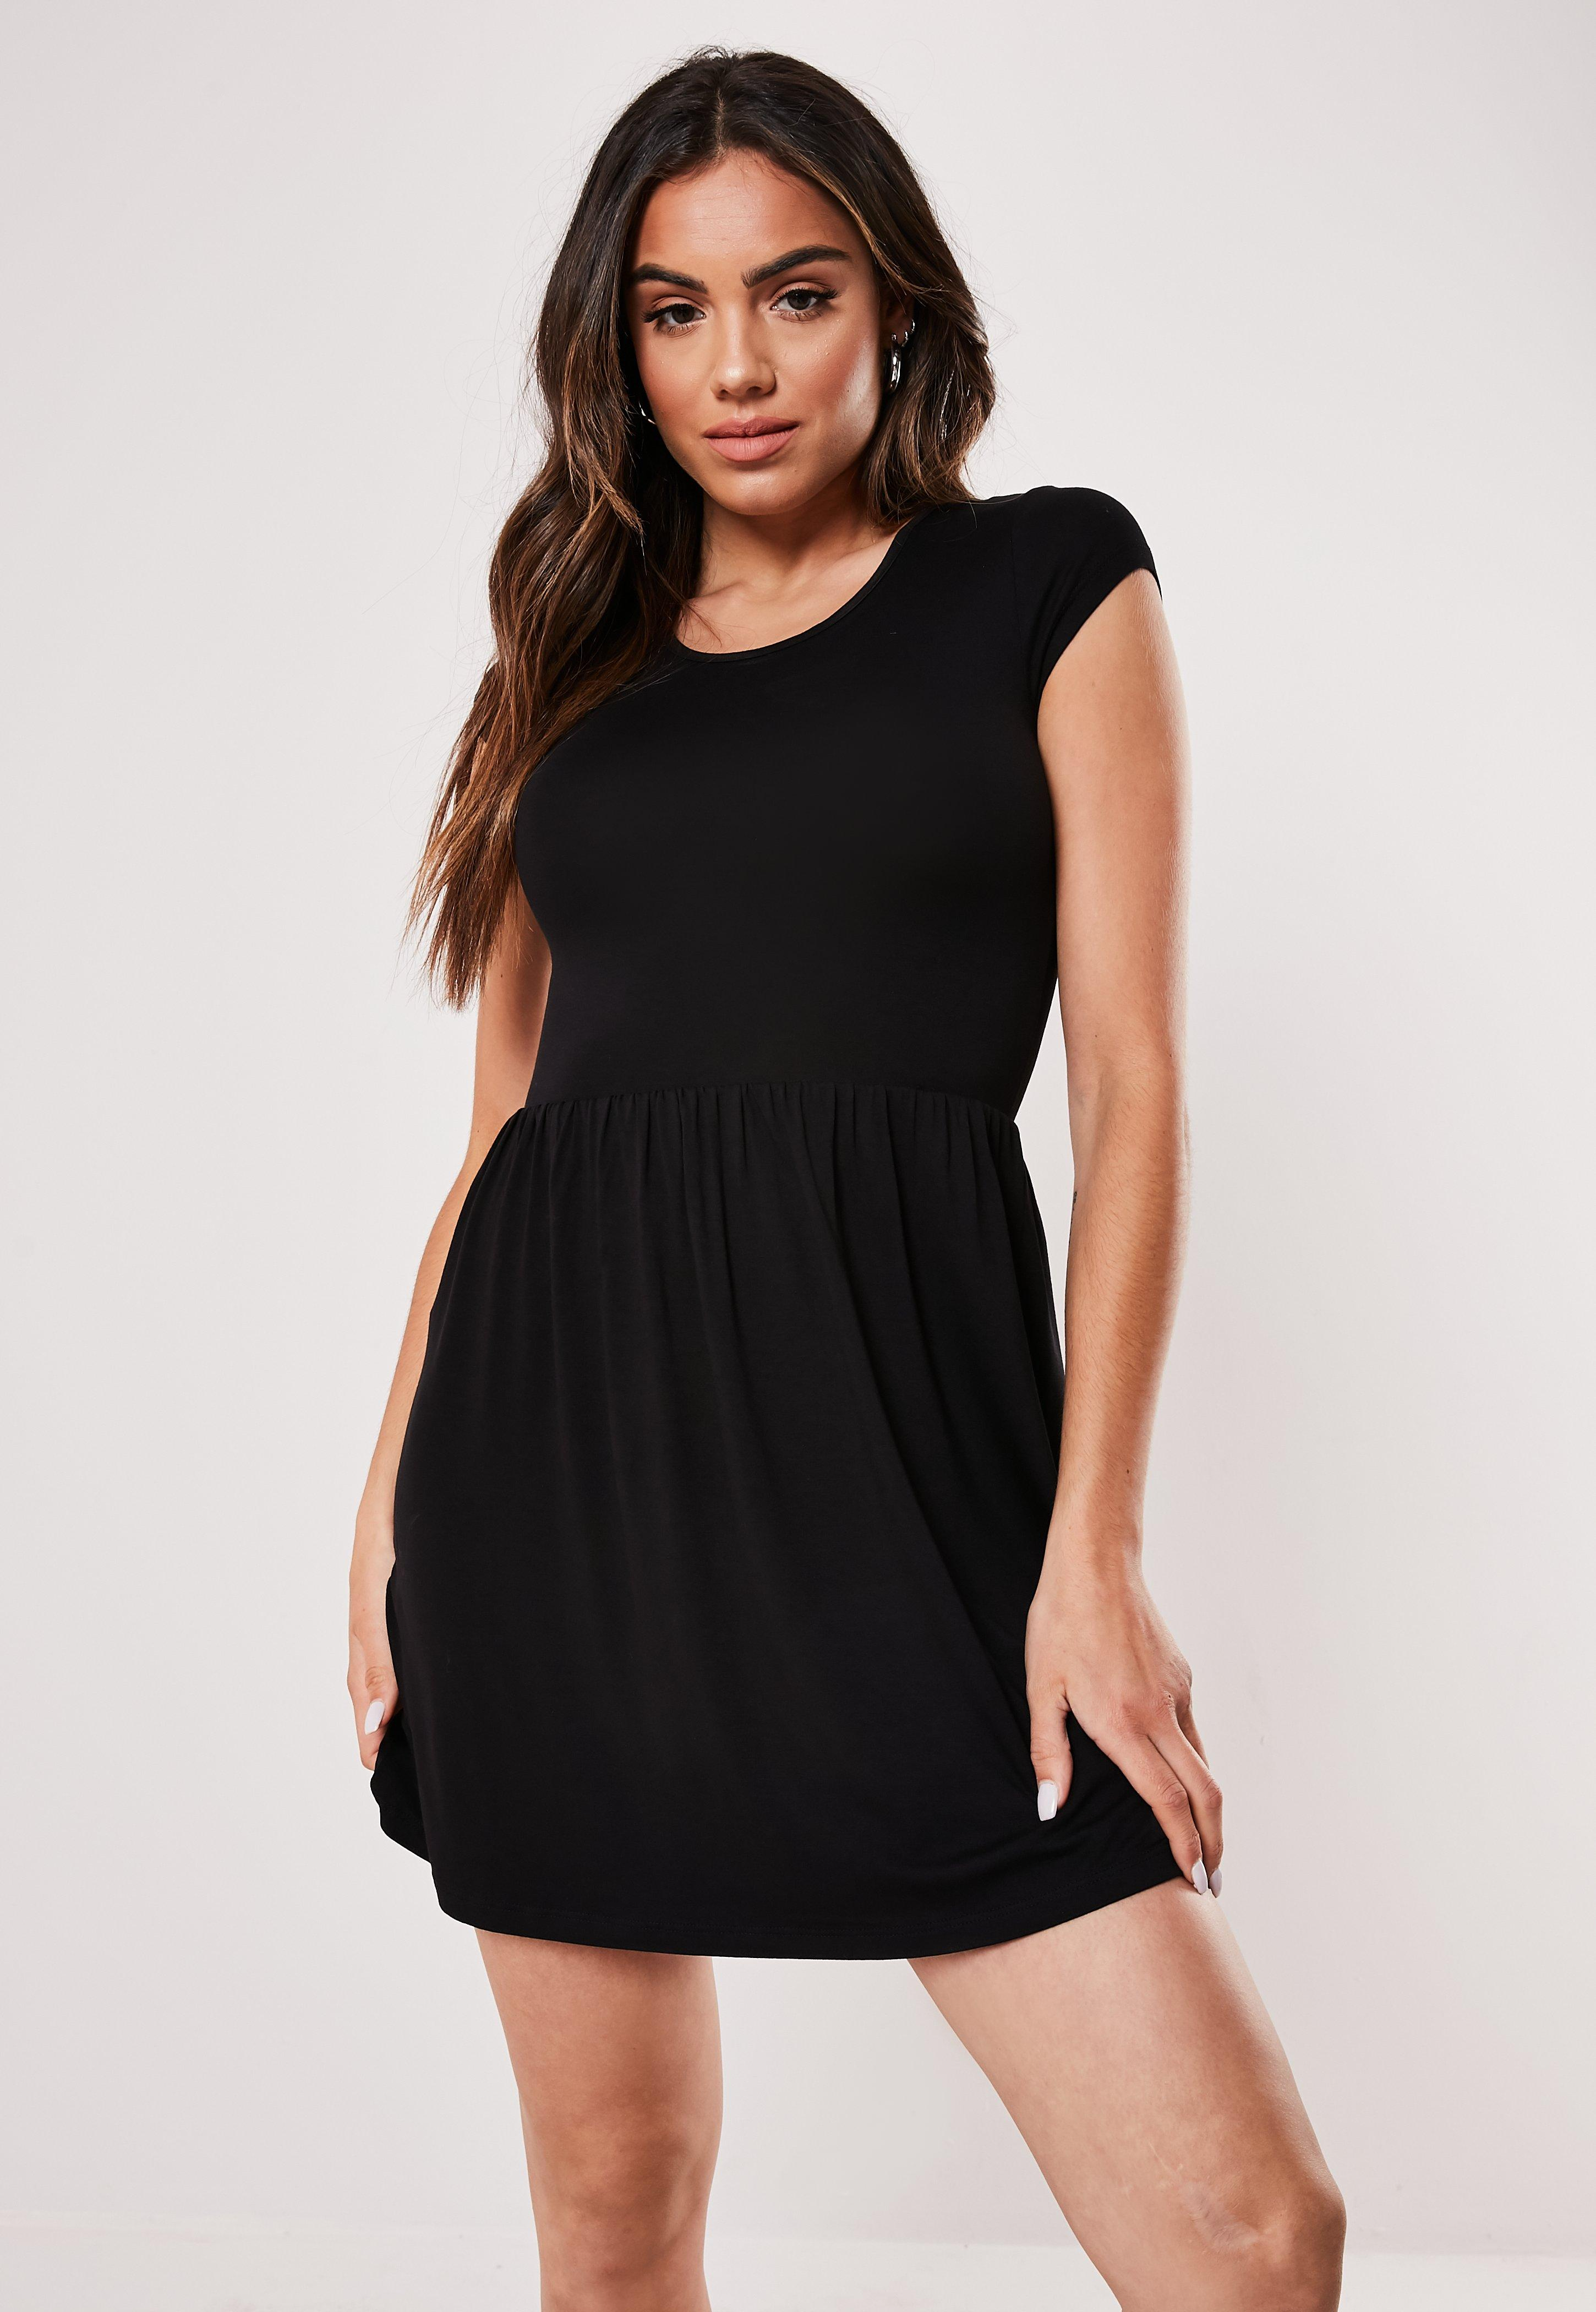 bda3166e7e4 Petite Clothing, Womens Petite Clothes Online - Missguided